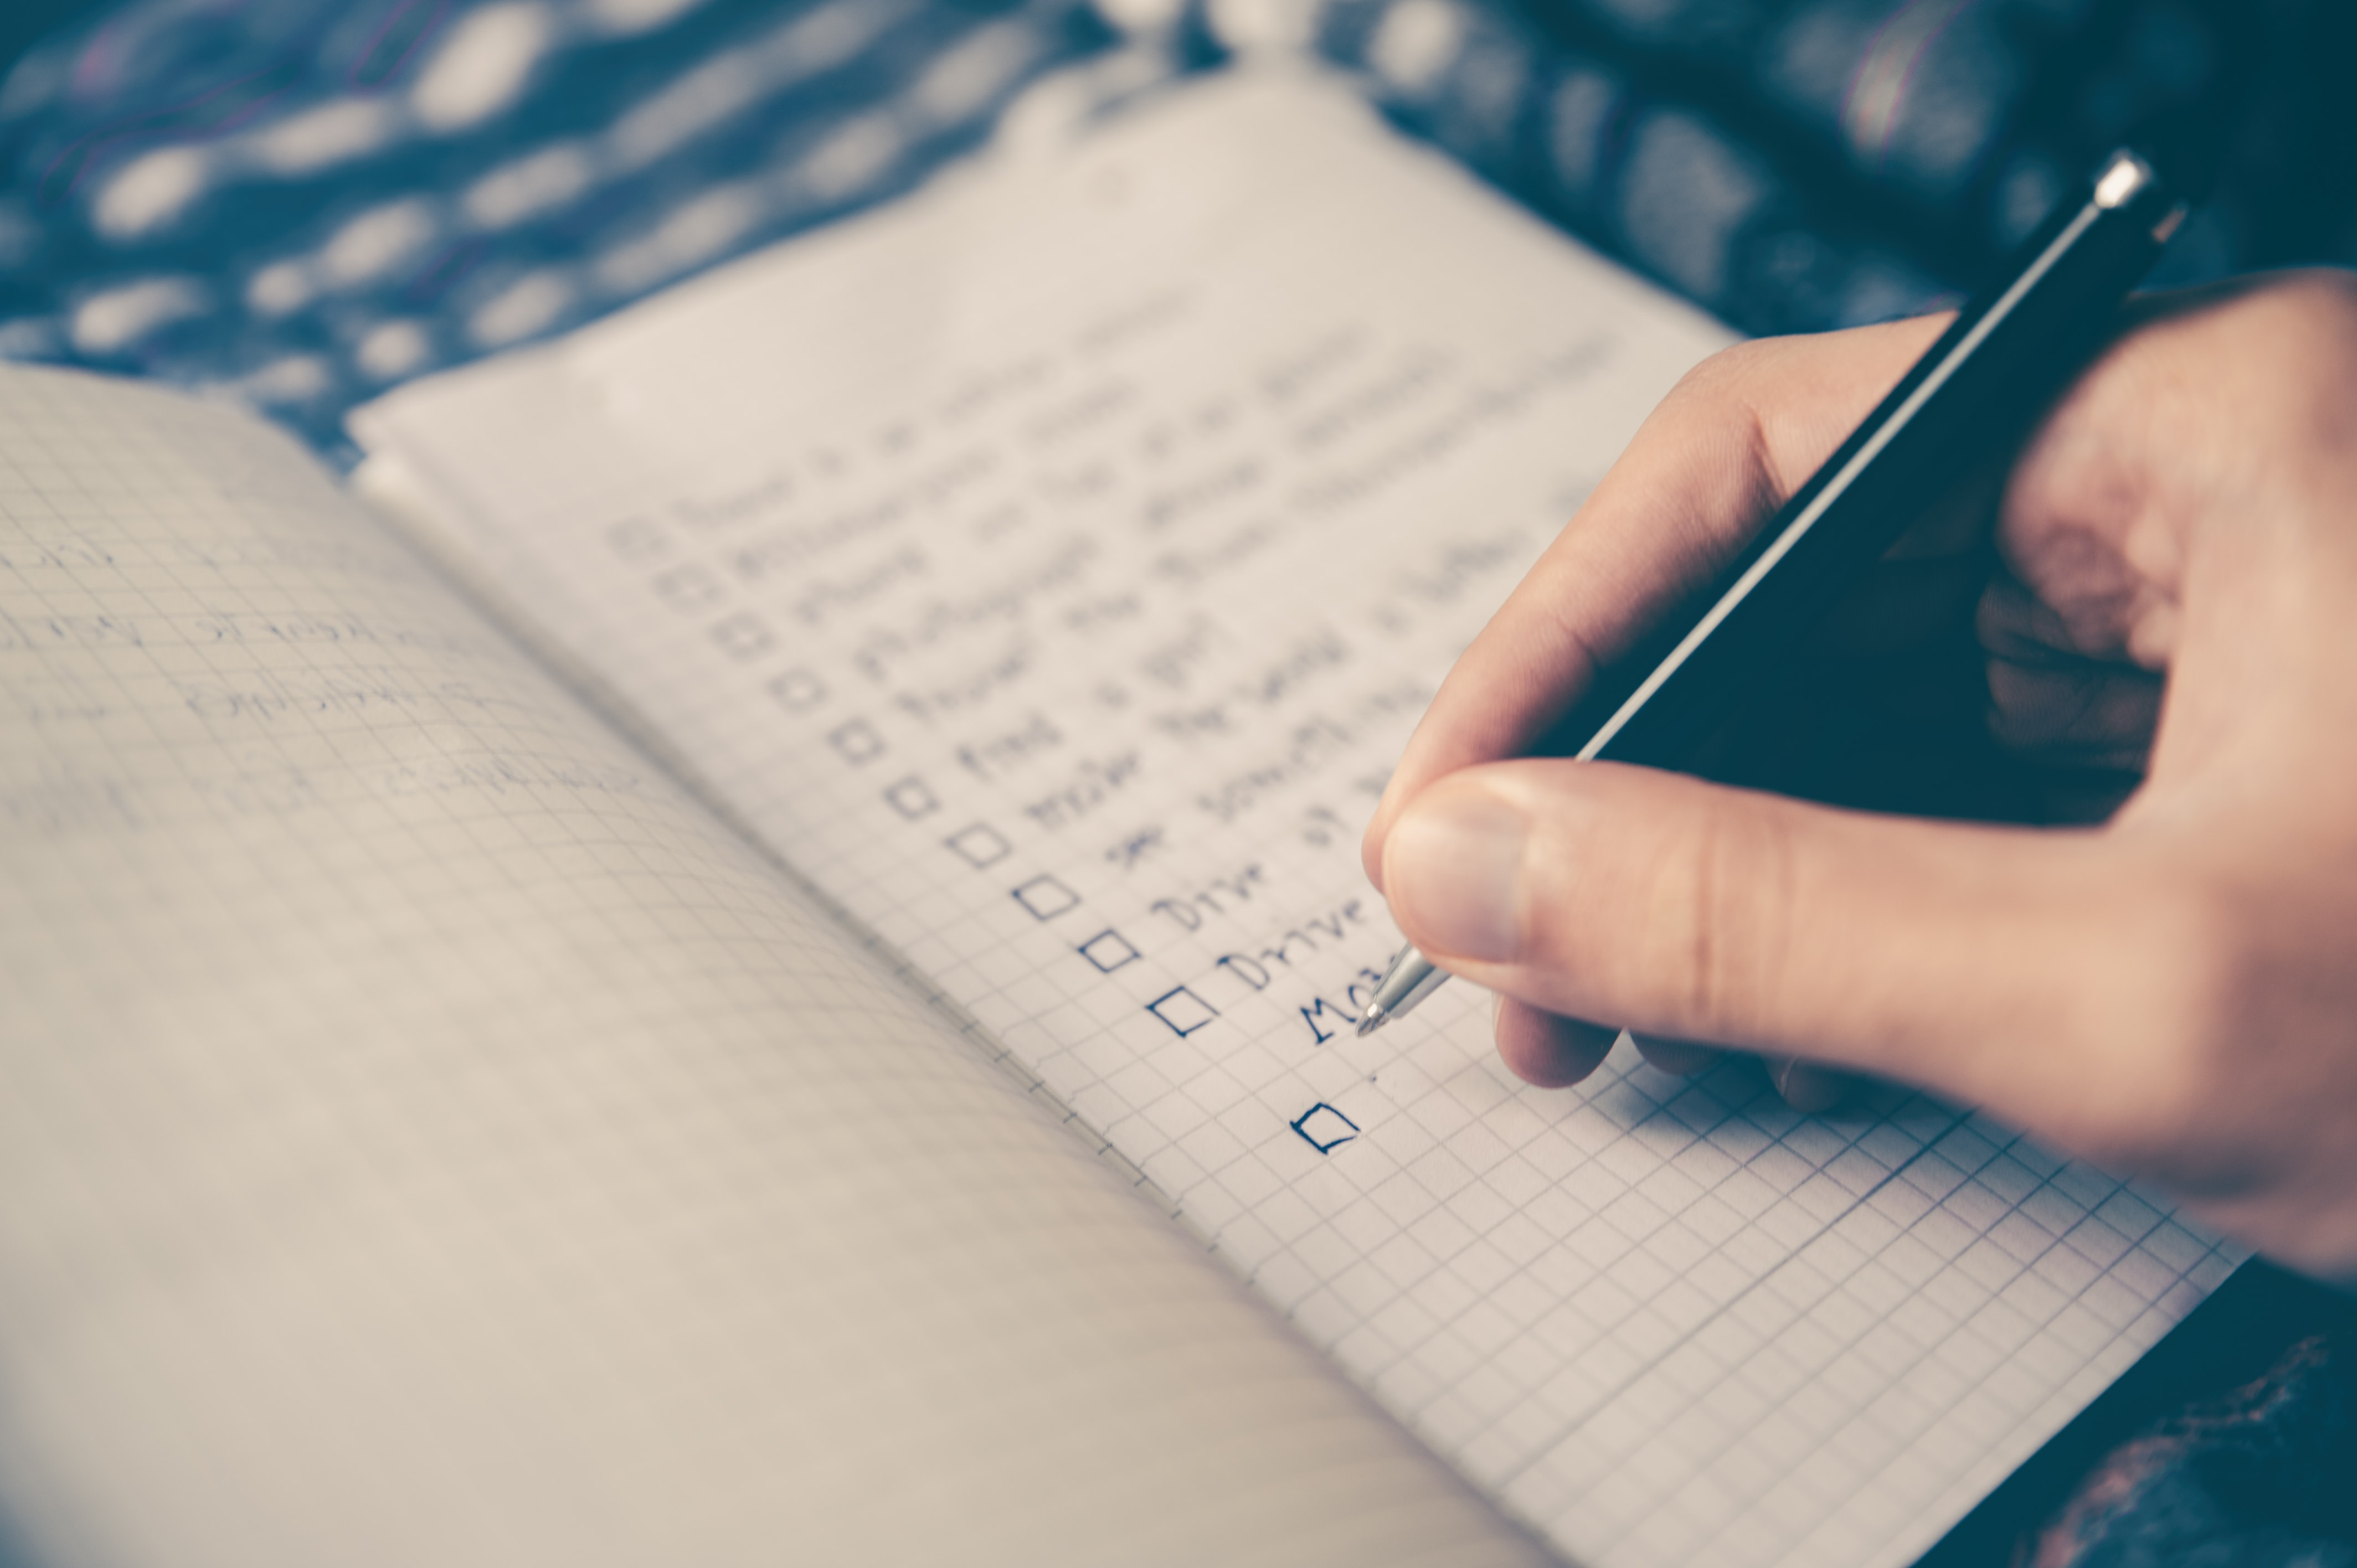 Is your To-Do List or Worry List a mile long?